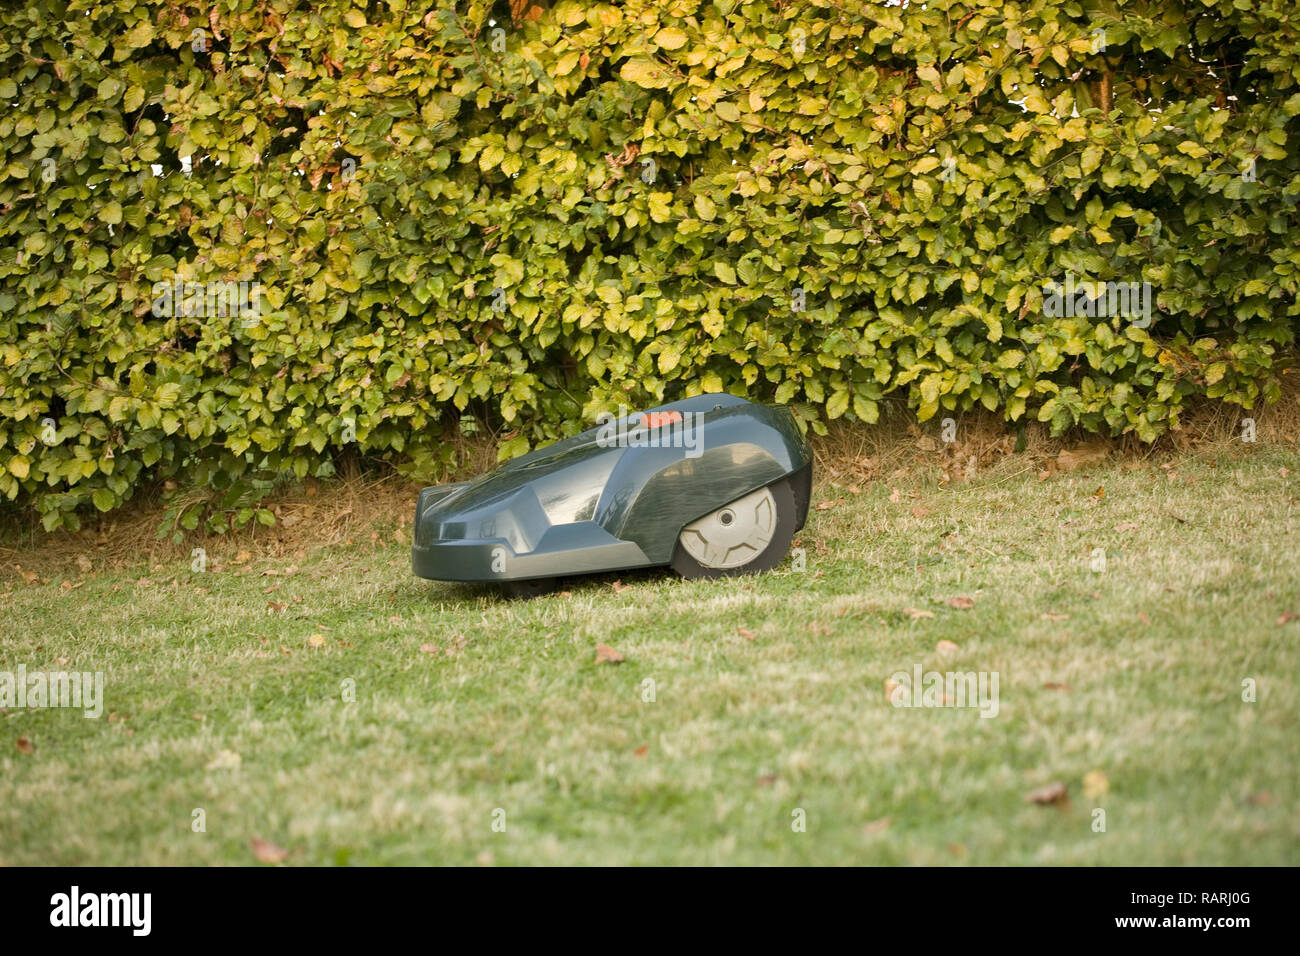 Green automatic robot lawnmower cutting grass running along the edges of a lawn by a hedge - Stock Image